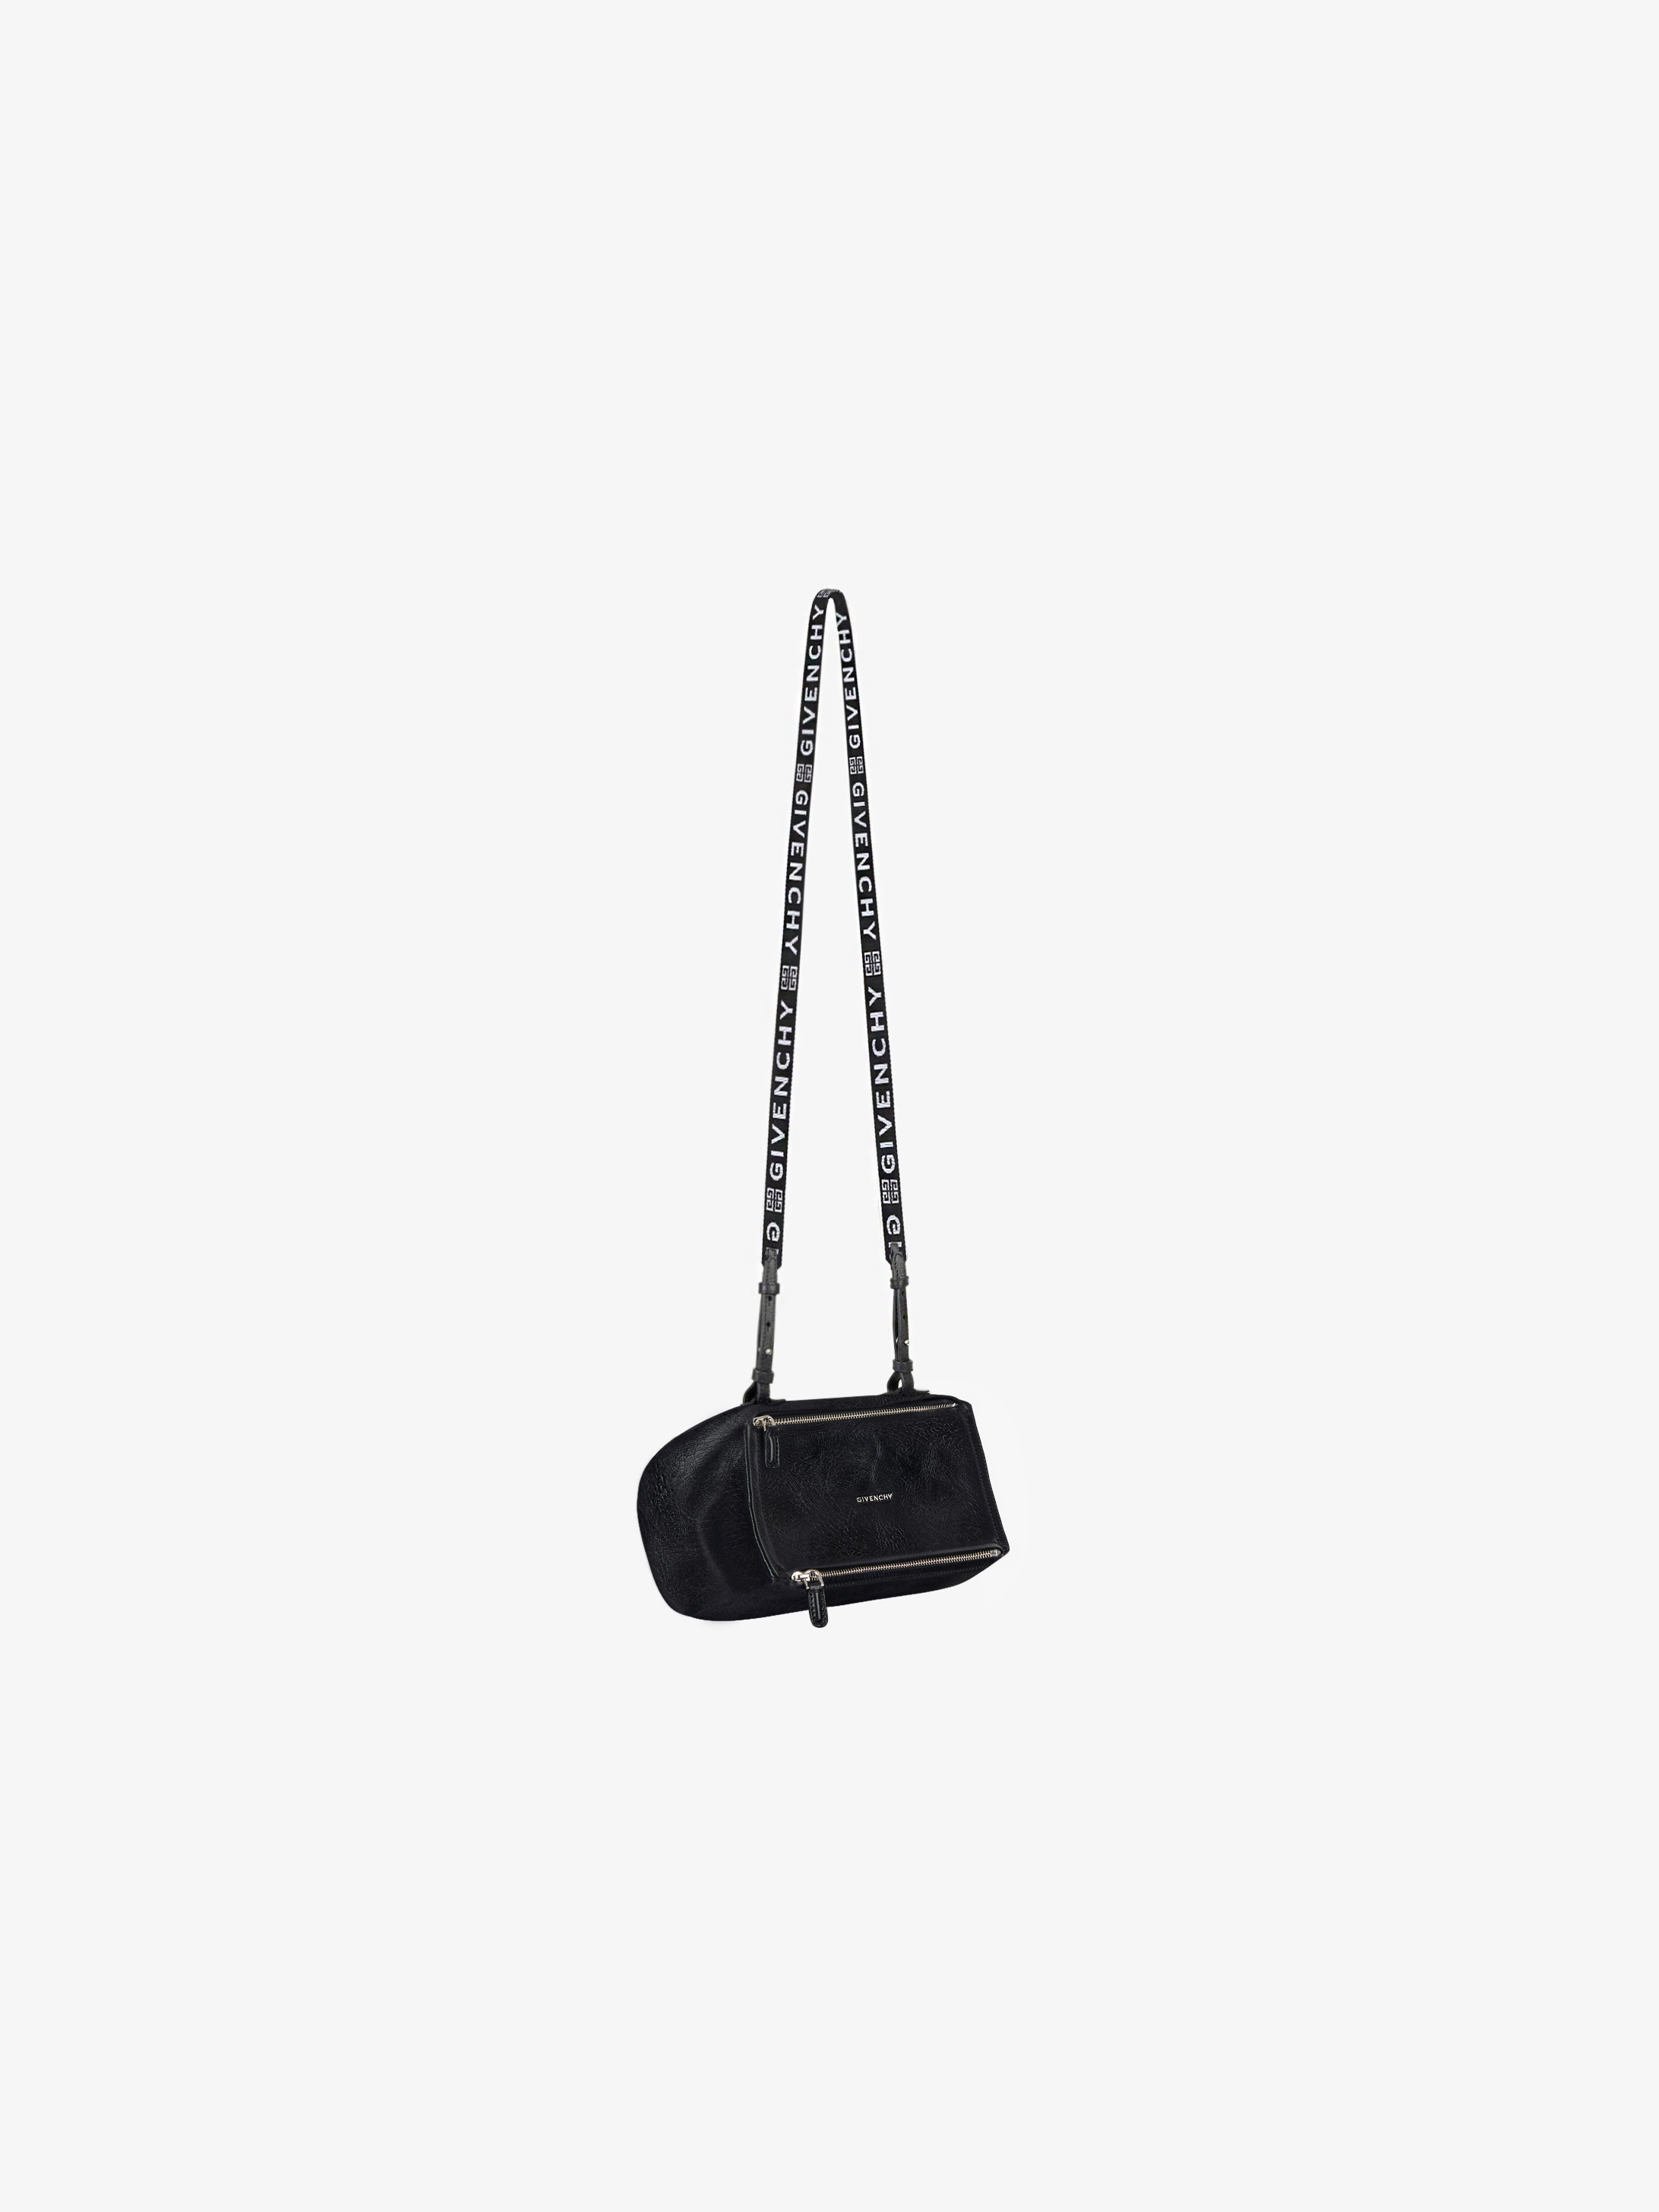 Mini Pandora Bag in patent leather with 4G strap